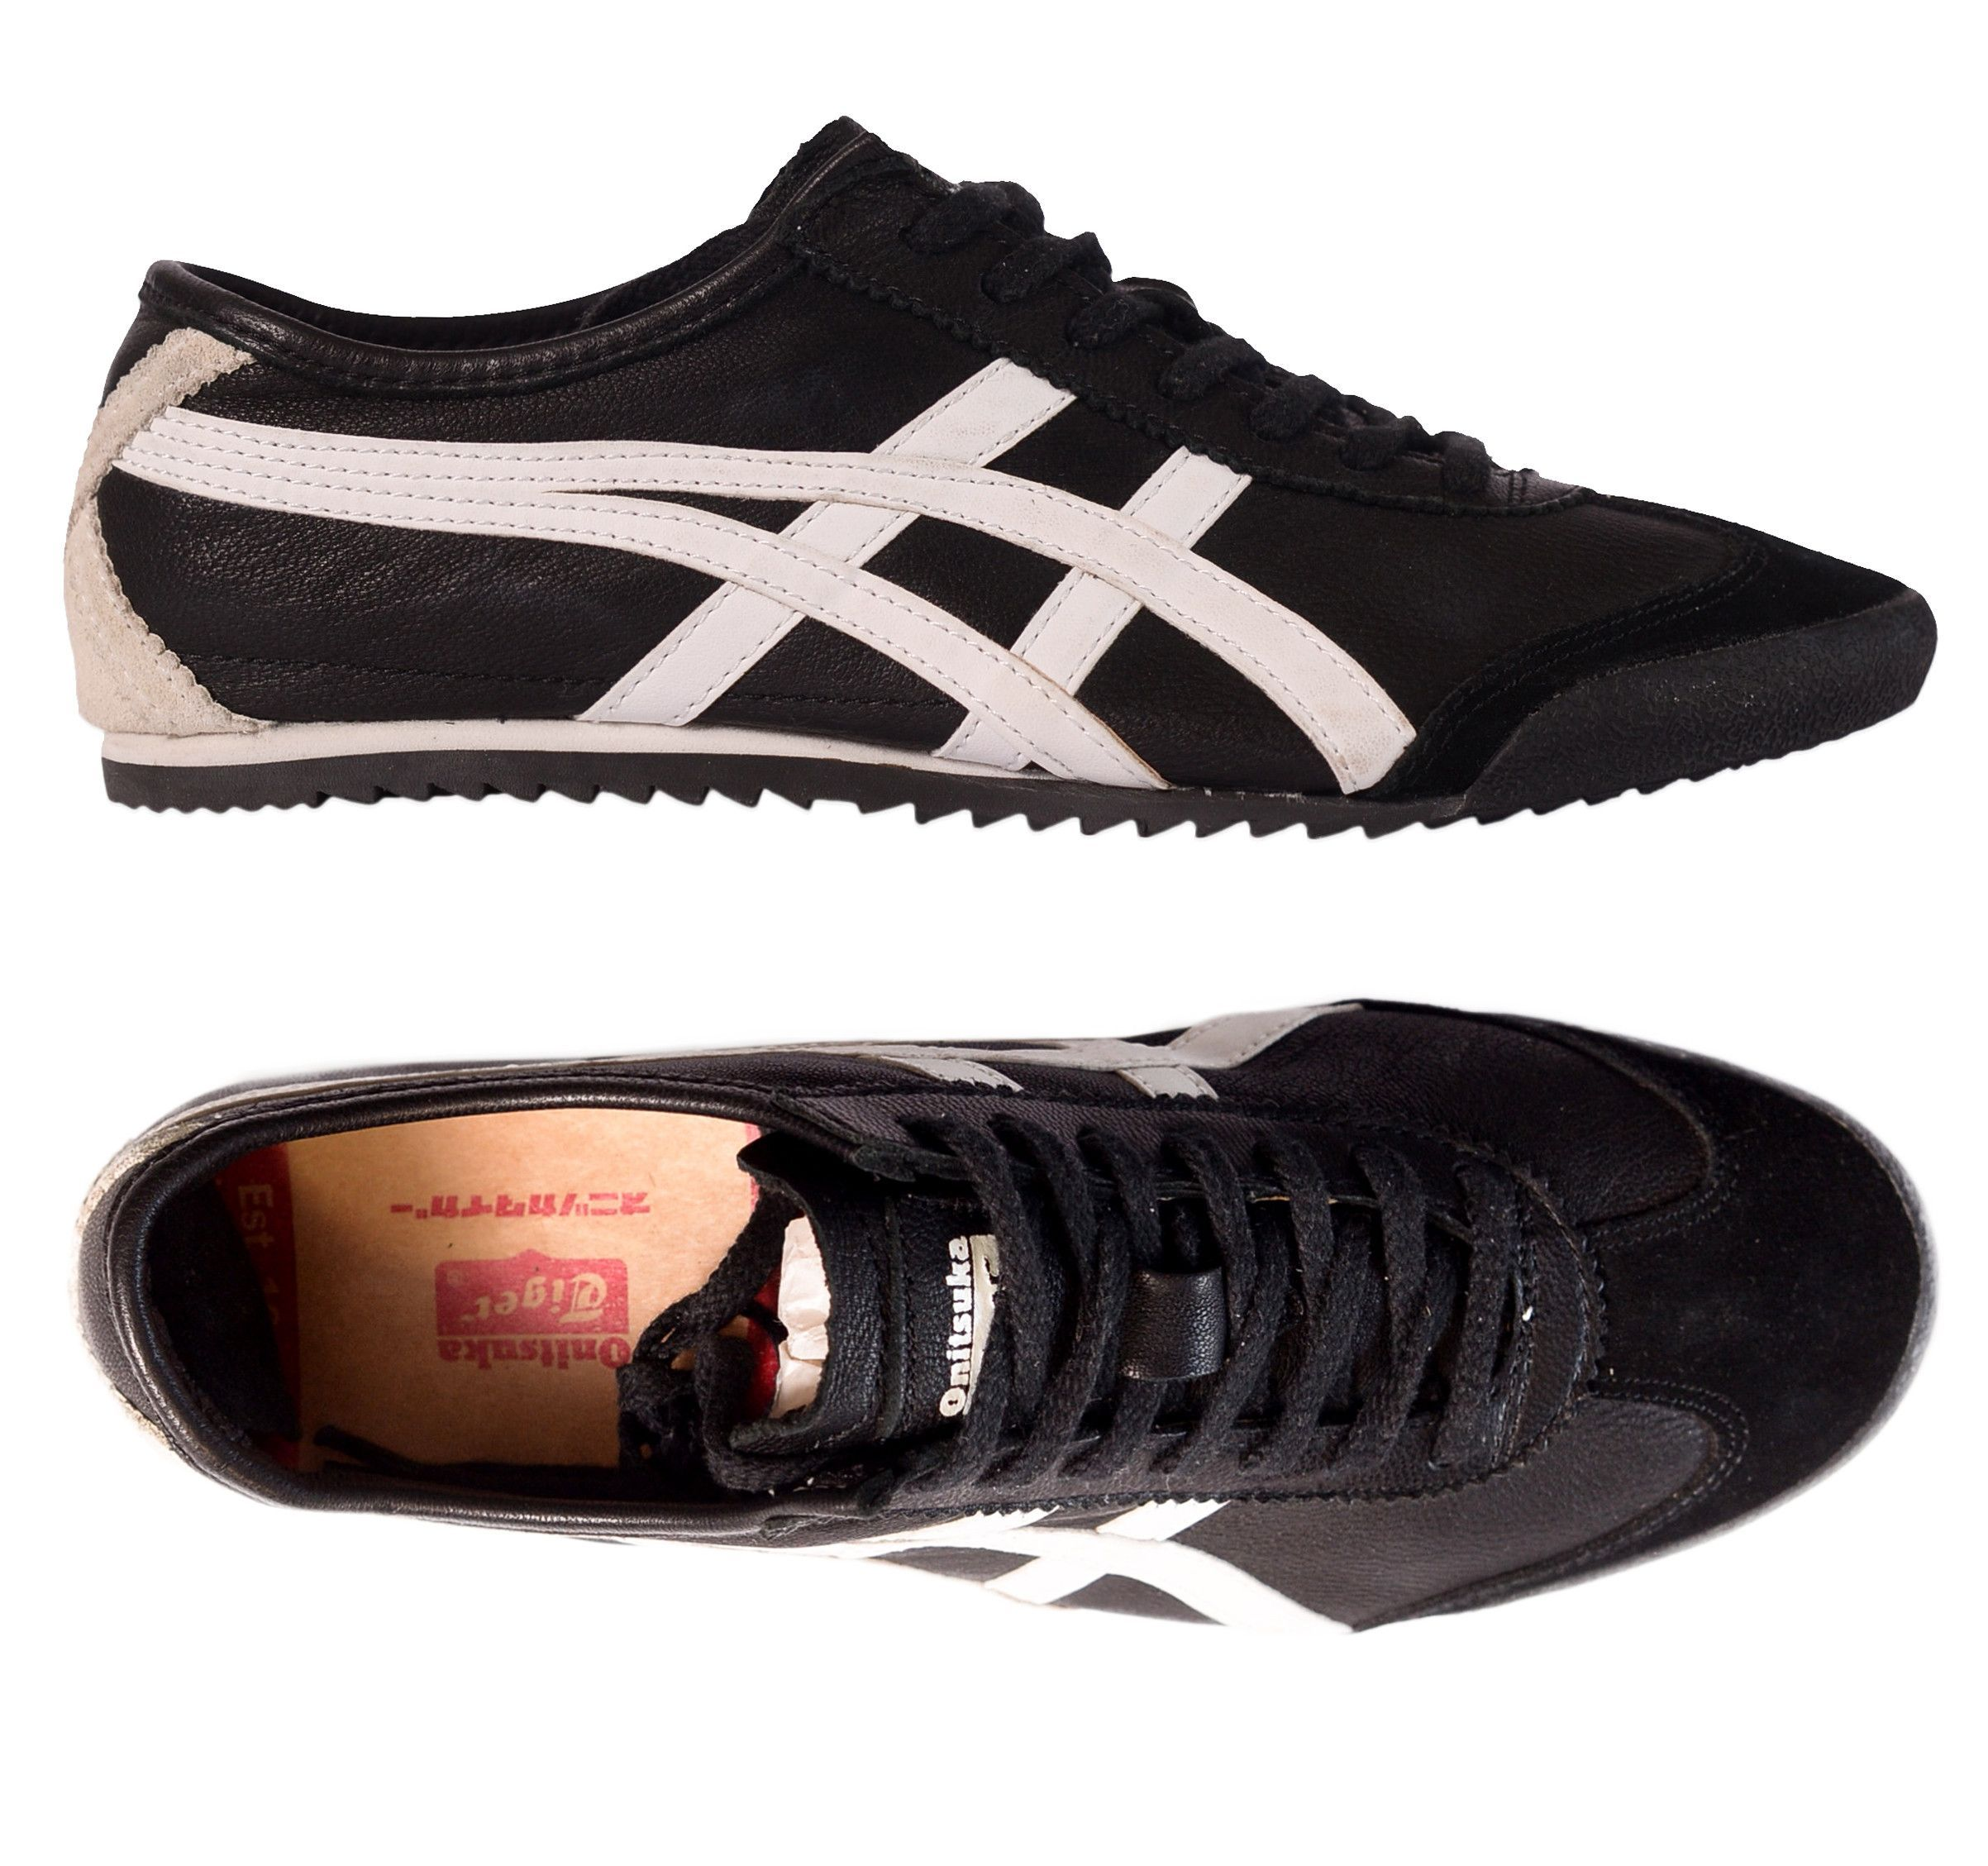 ASICS BY KIHACHIRO ONITSUKA Tiger Black Leather Sneakers Shoes EU 42 NEW US  8.5